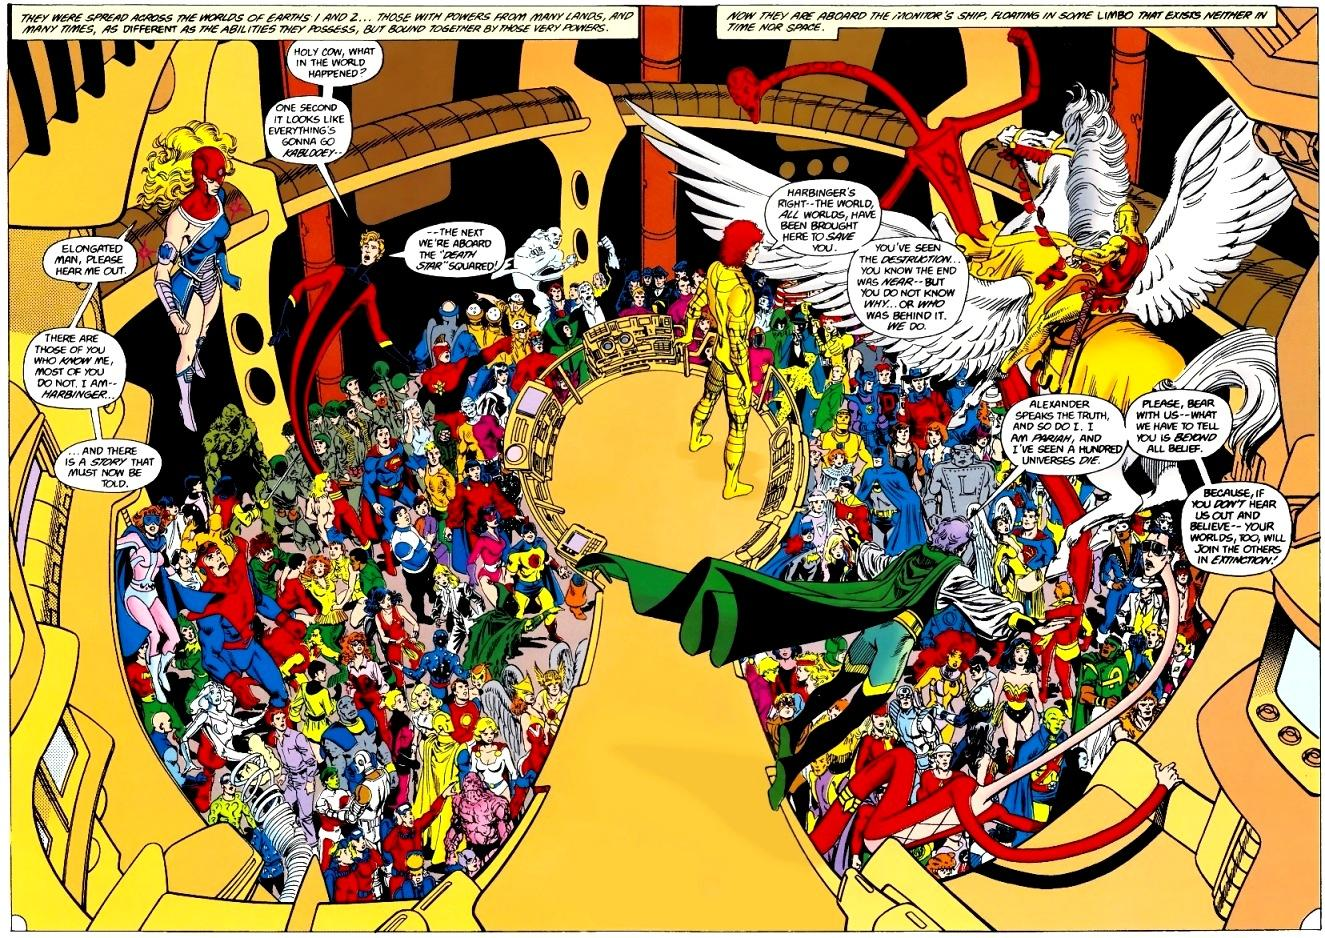 Five Reasons Why Crisis on Infinite Earths Is Better Than Infinity Gauntlet